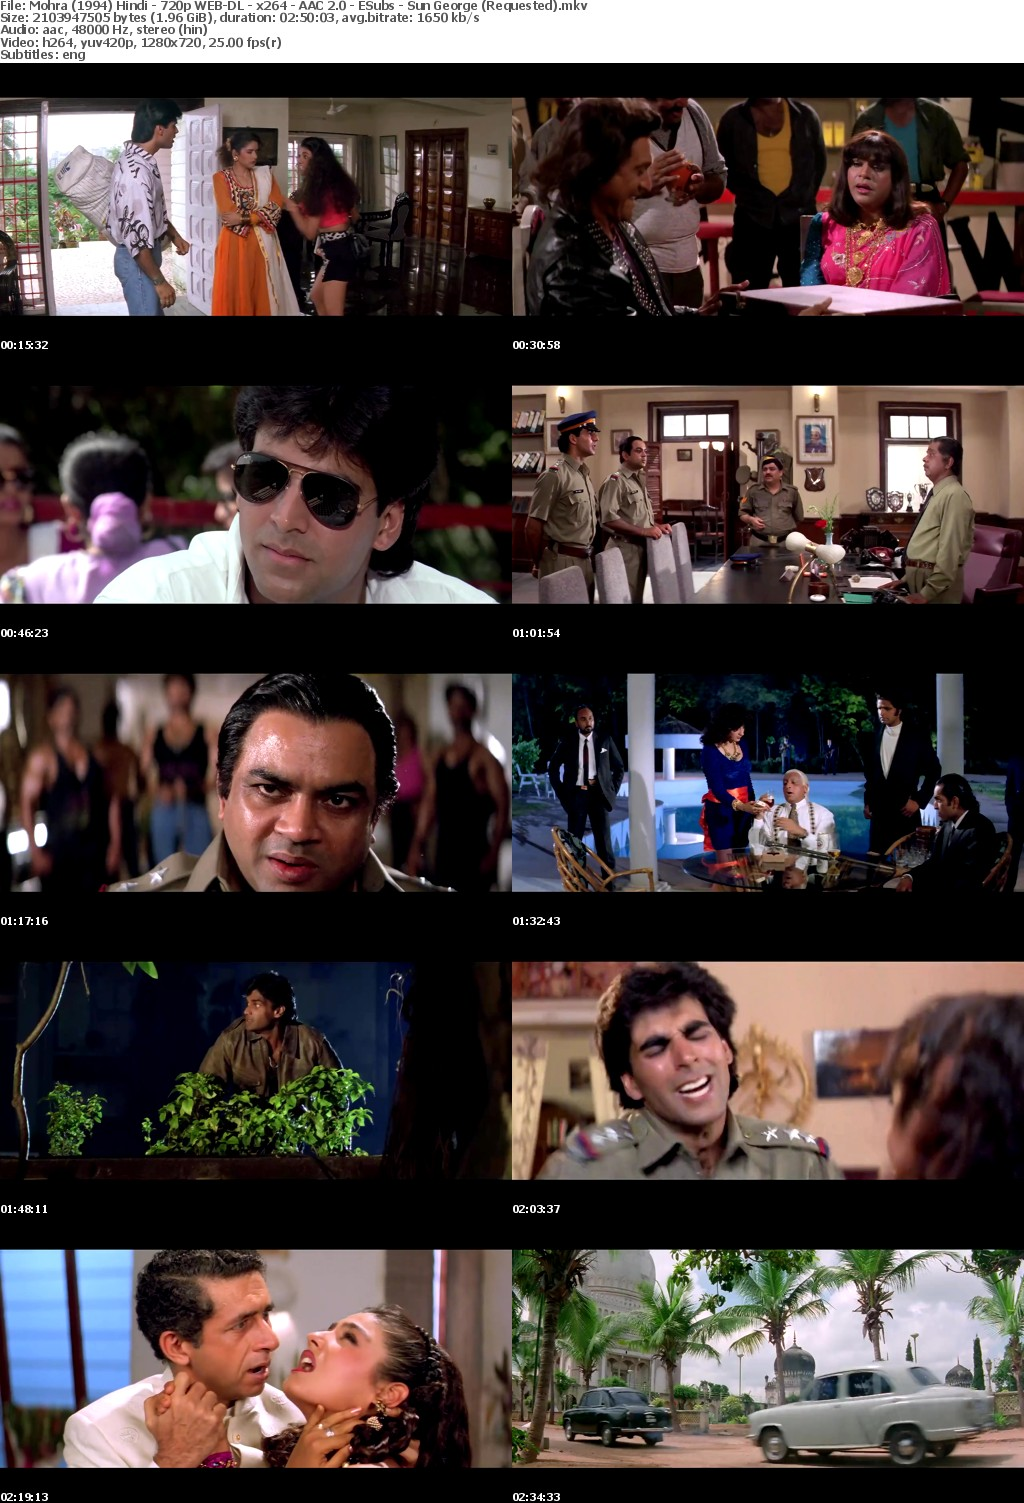 Mohra (1994) Hindi 720p WEB DL x264 AAC 2 0 ESubs Sun George (Requested)